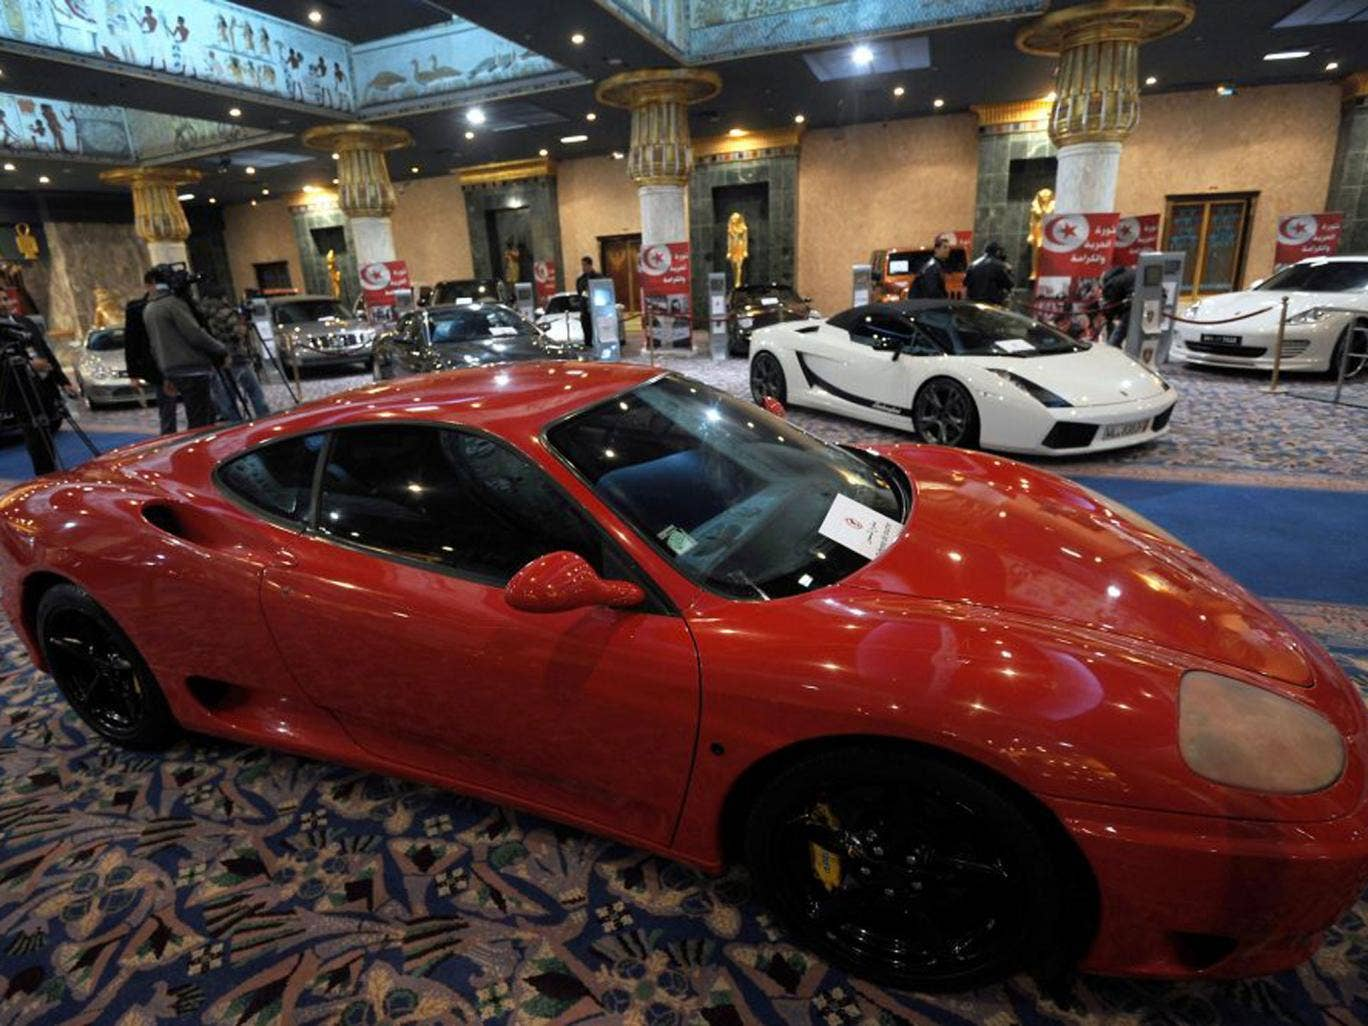 Luxury cars and a gilded falcon are among items from ousted Tunisian dictator Ben Ali and his family's treasure chest on display in Tunis